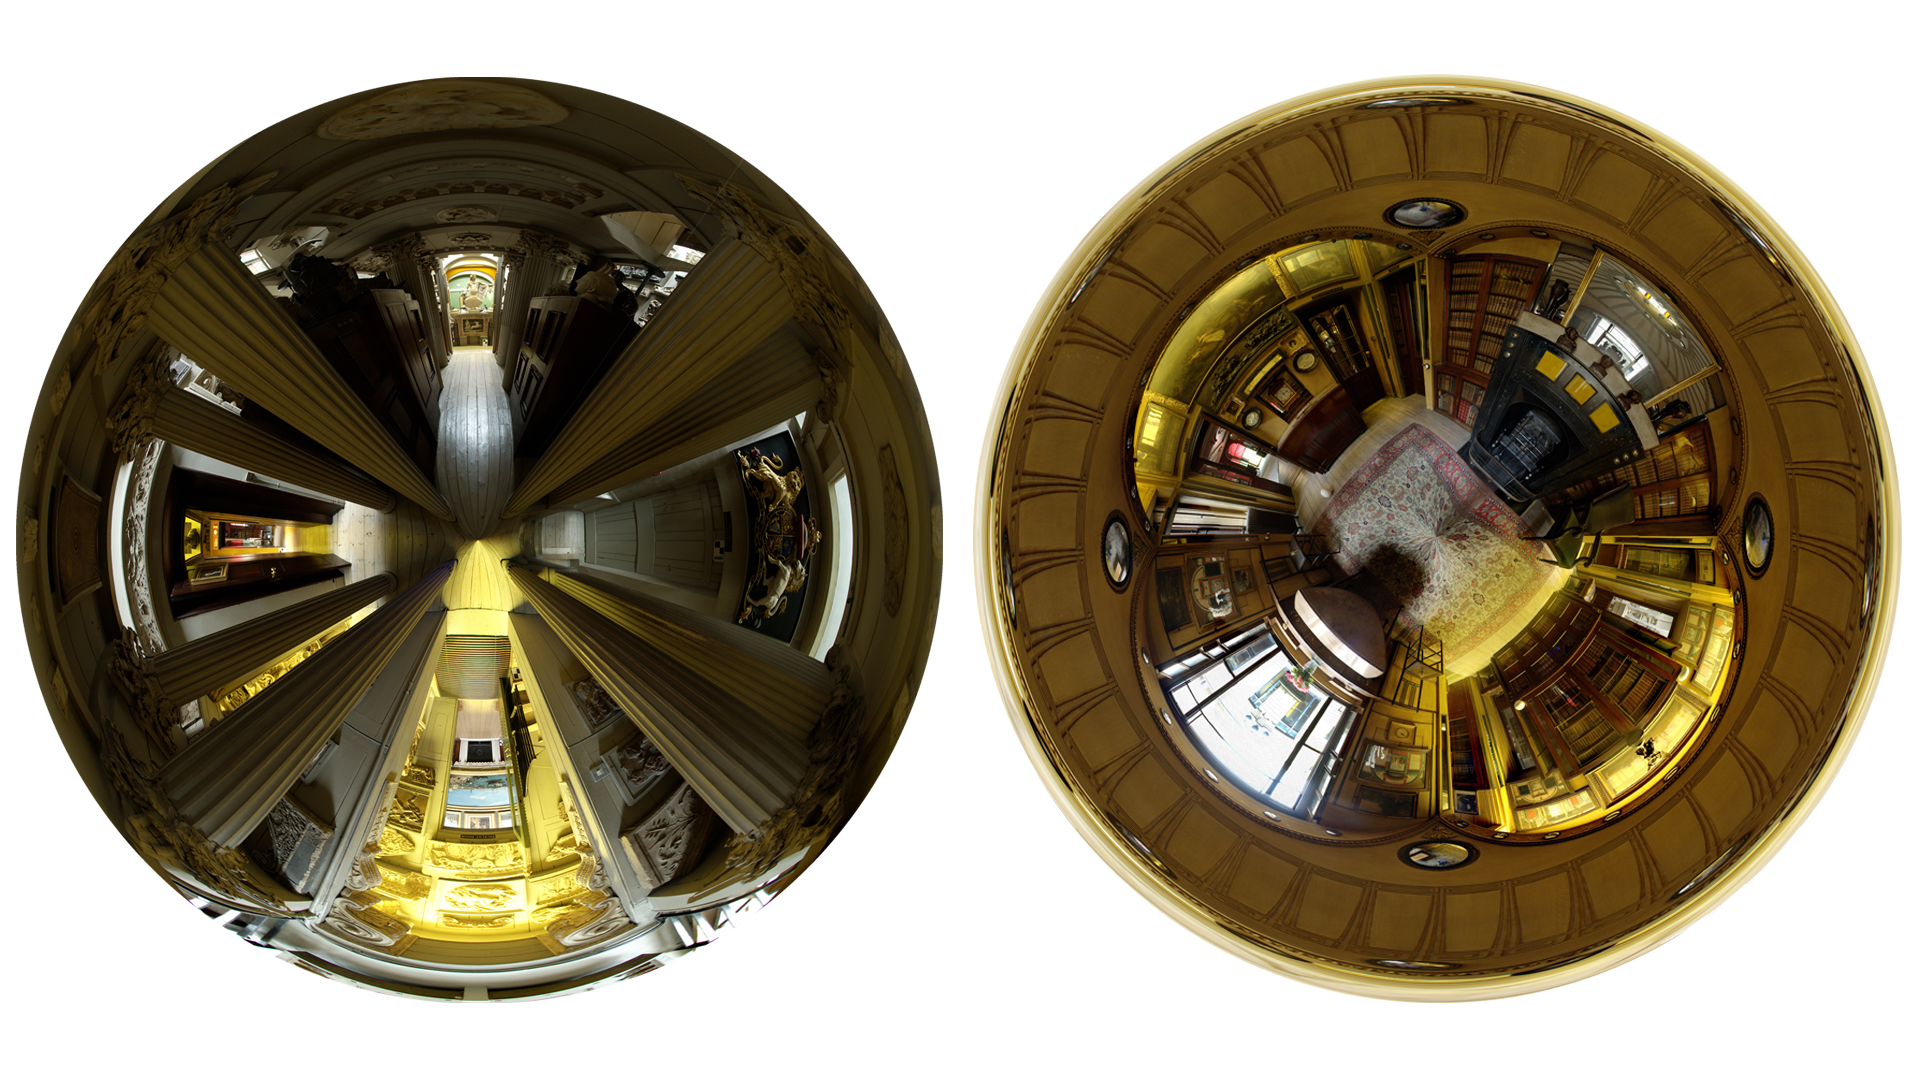 Stereographic projections of the Museum and Breakfast Room of Sir John Soane's Museum, London through a fisheye lens